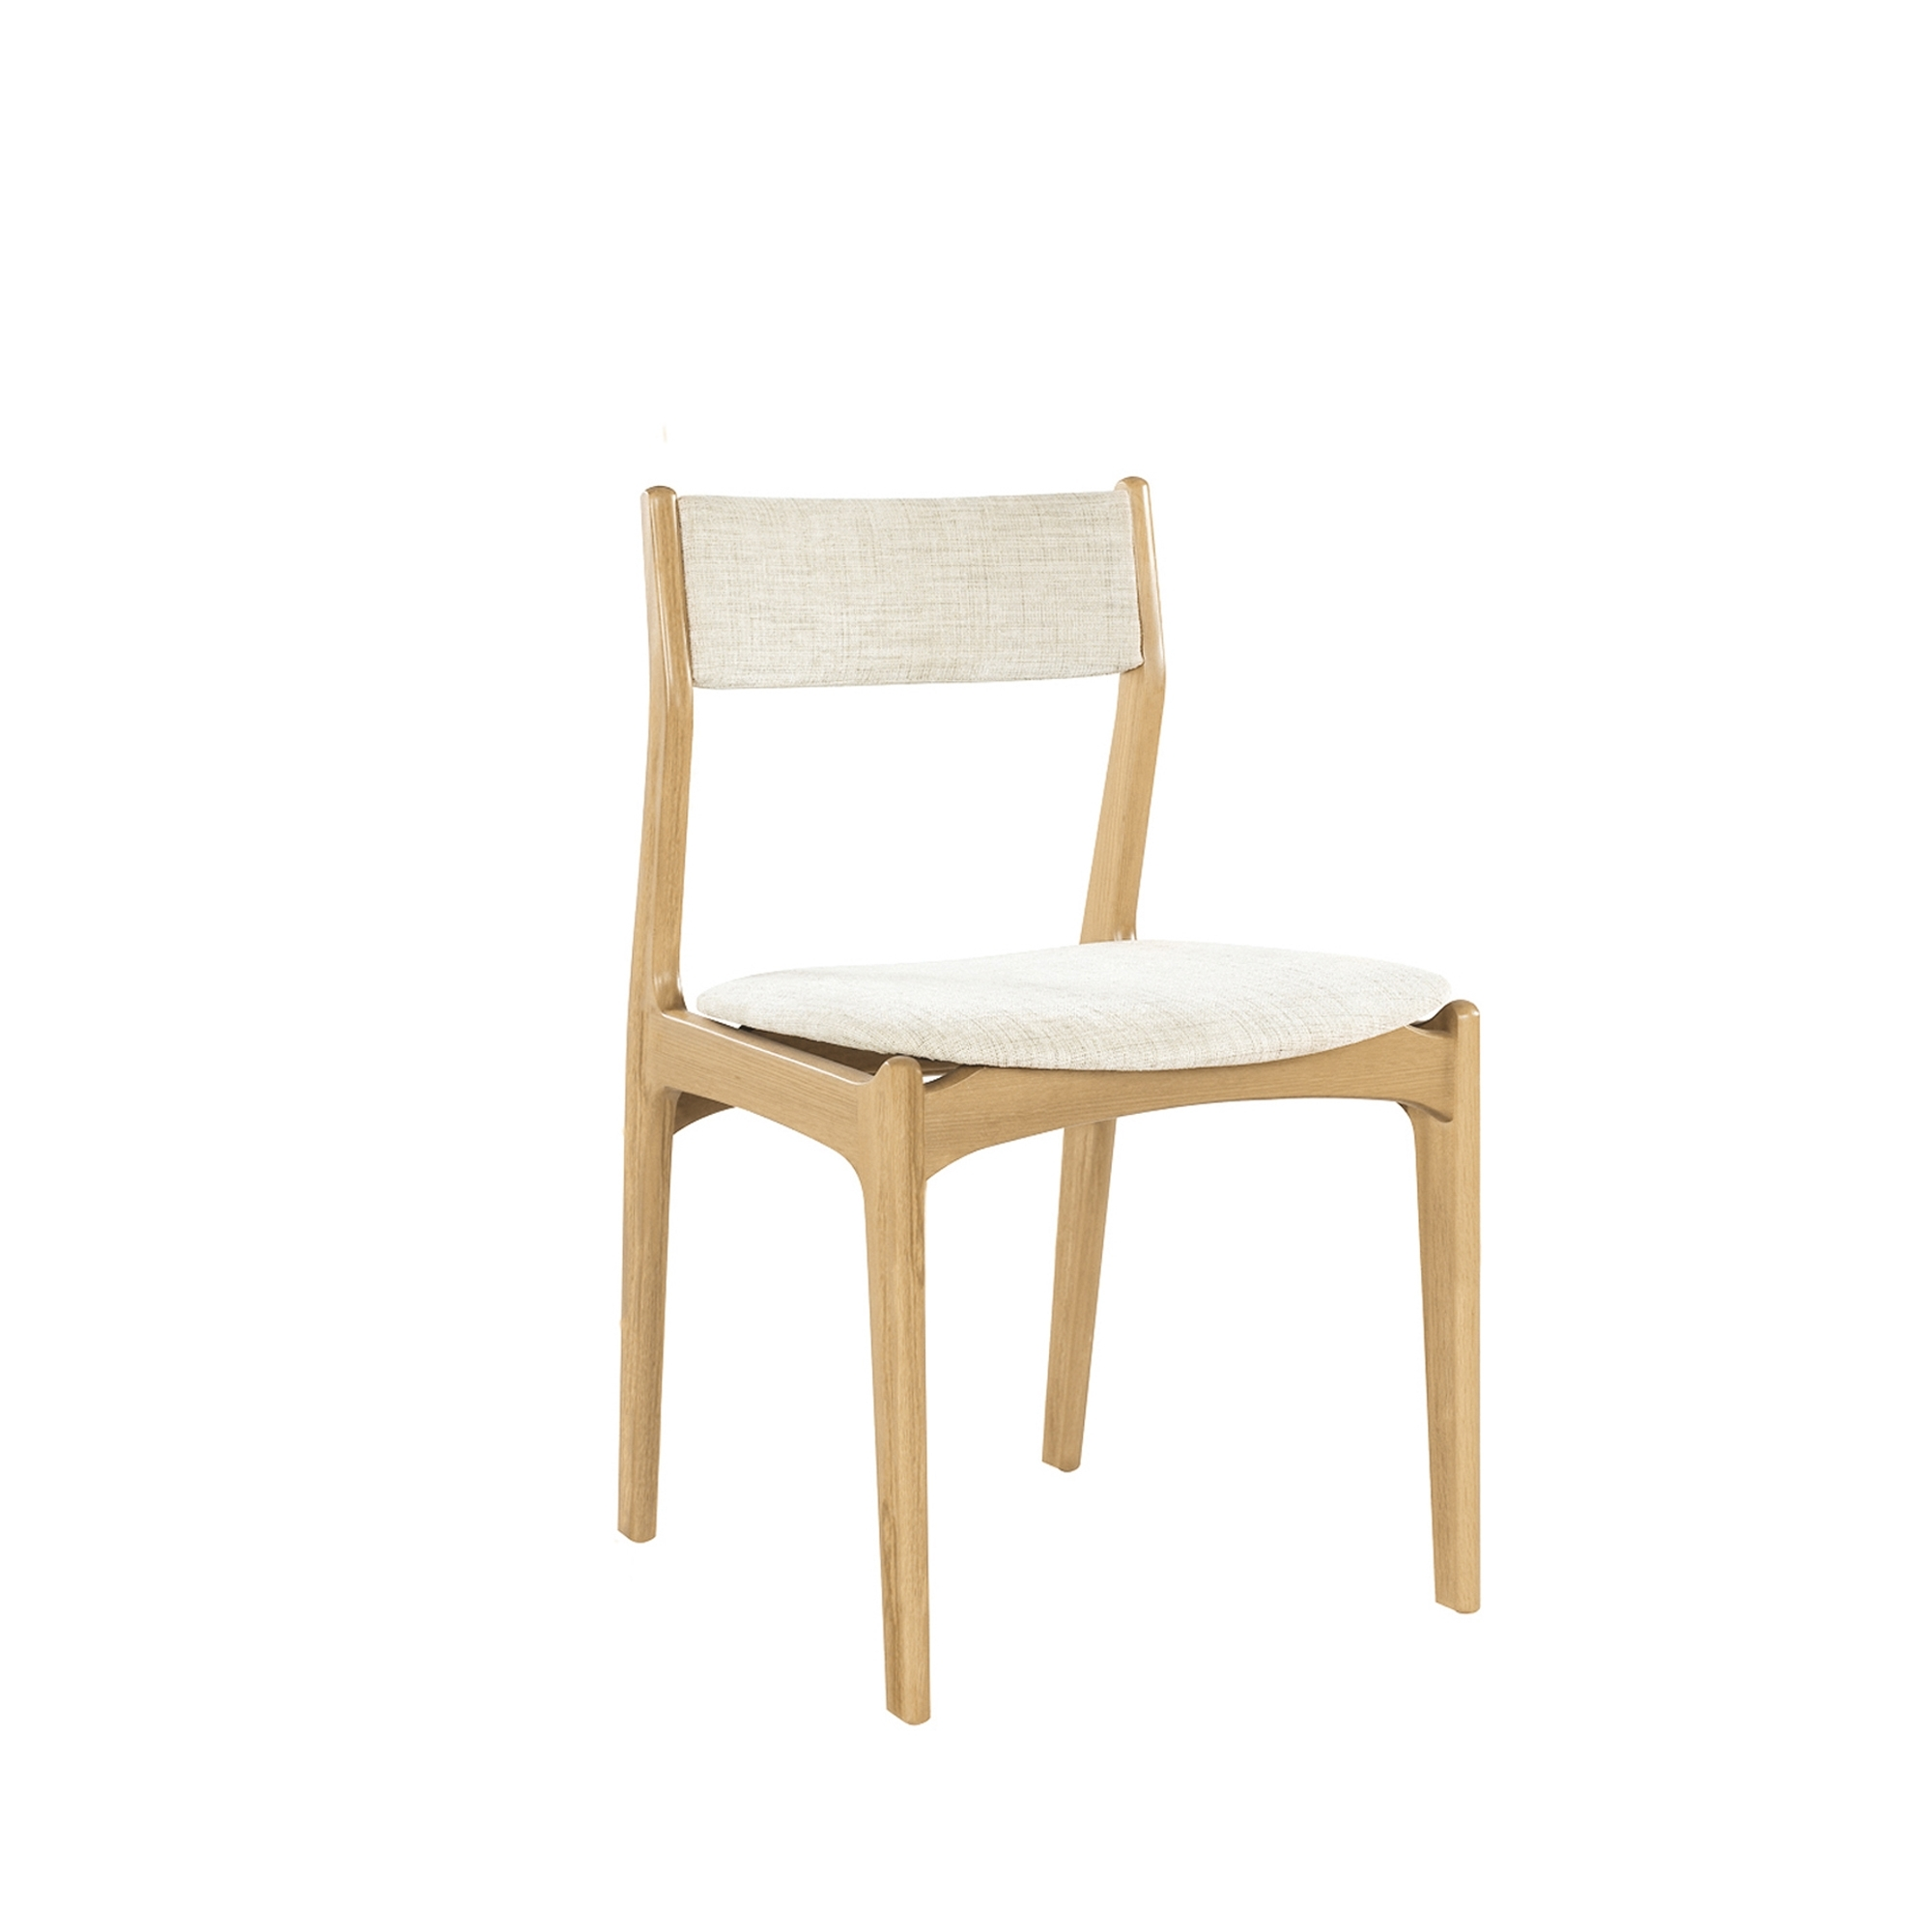 Nathan shades oak low back dining chair